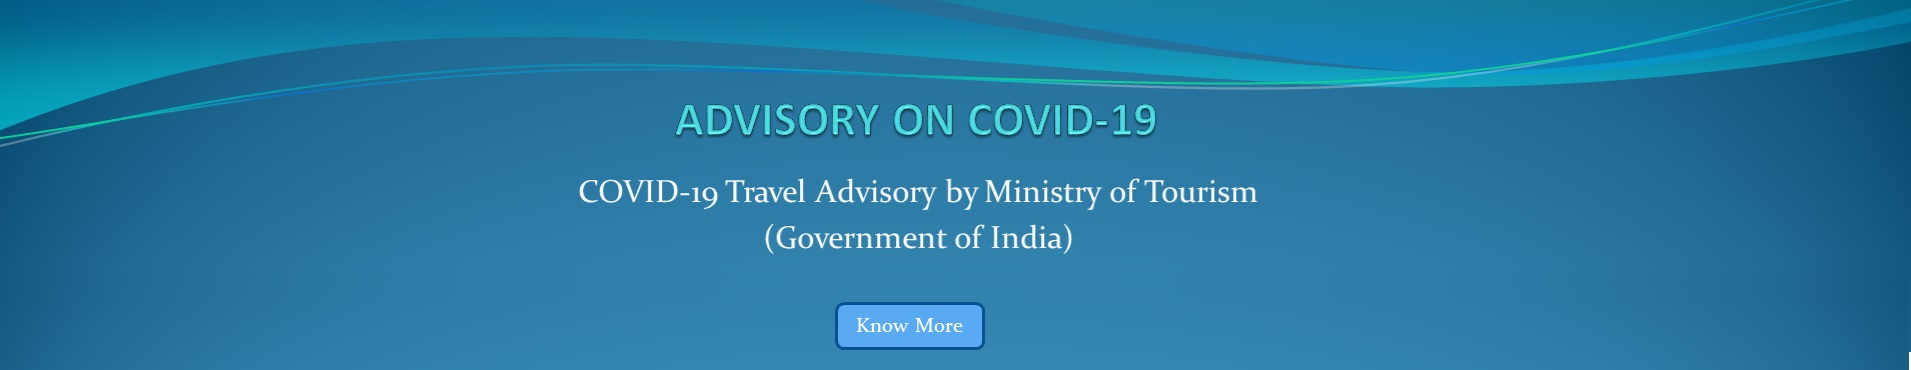 COVID-19 Advisory by Ministry of Tourism, Government of India